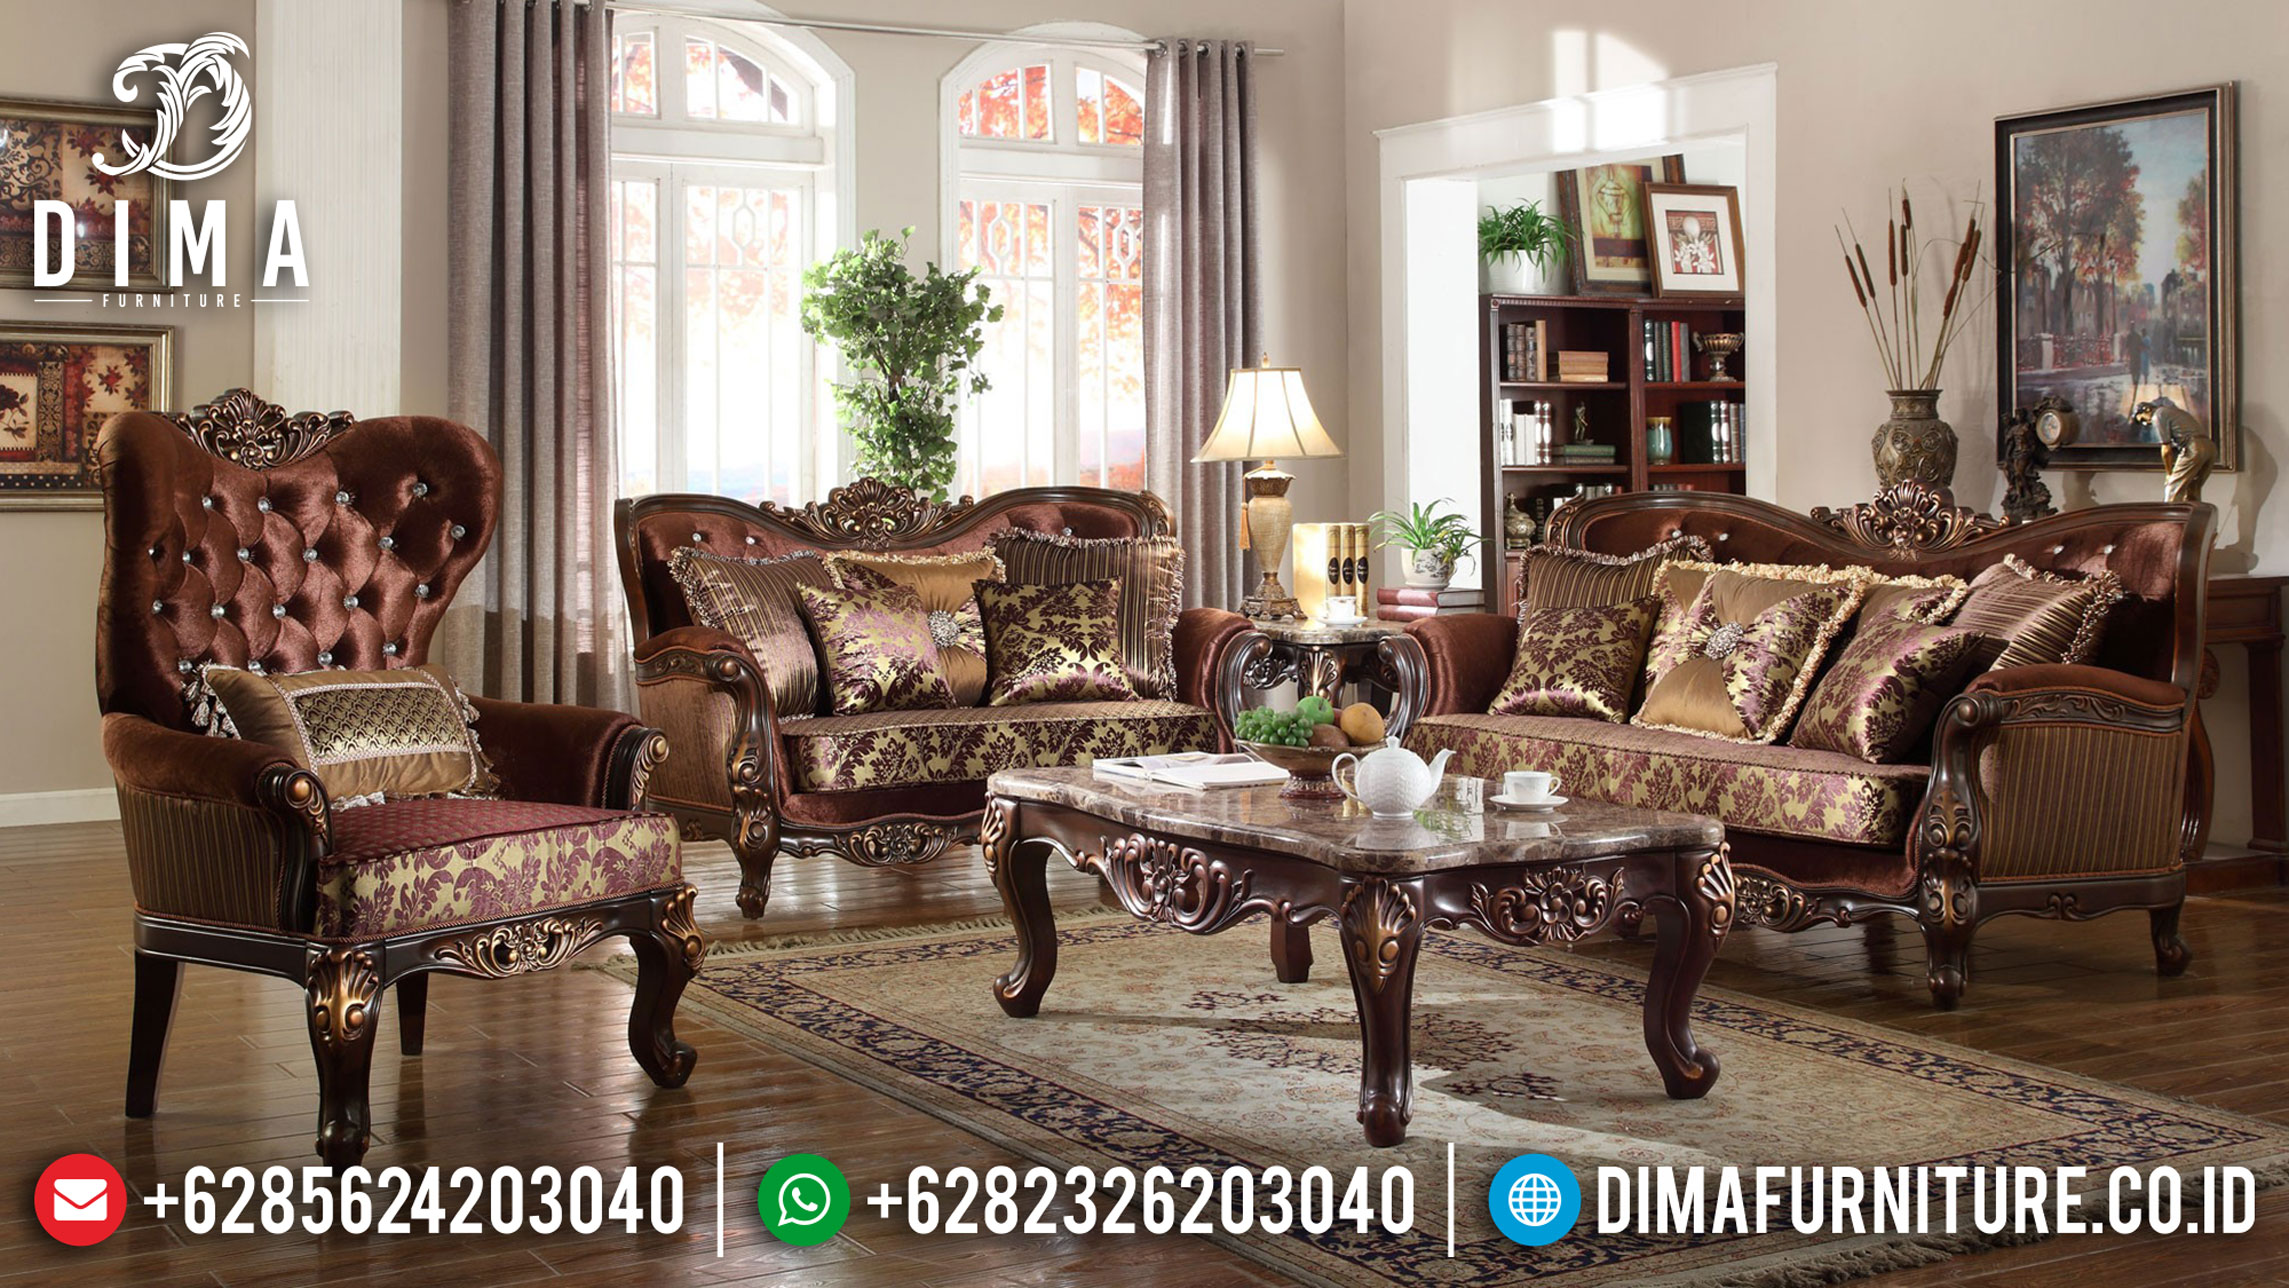 Jual Sofa Tamu Mewah Ukiran Jepara Luxury Classic Empire Style Golden Shine SK-381